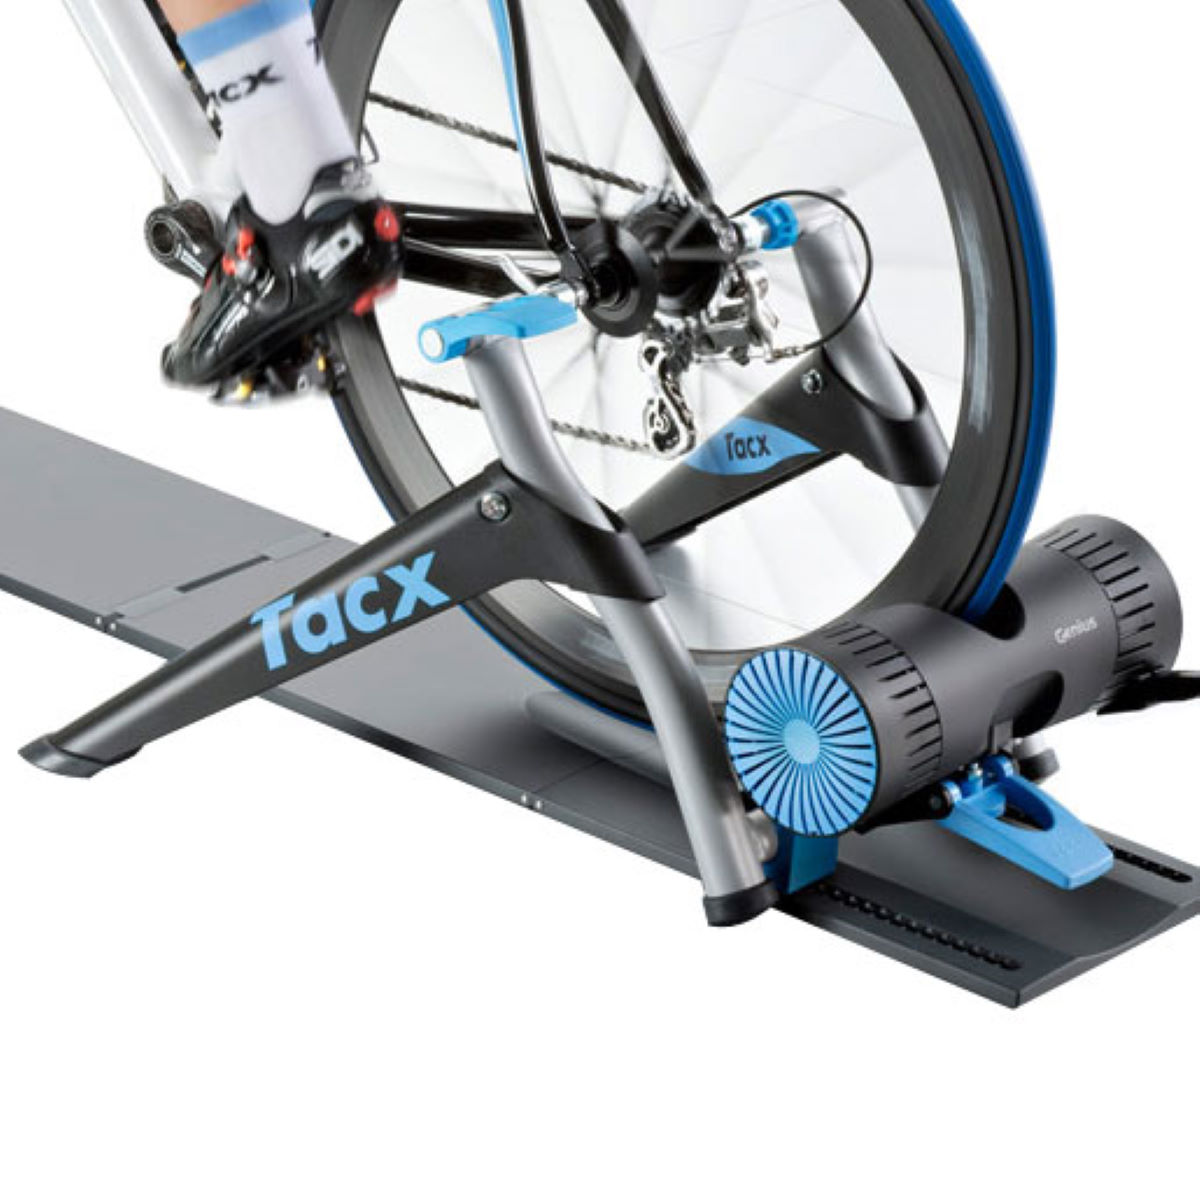 Tacx i-Genius Multiplayer VR Trainer